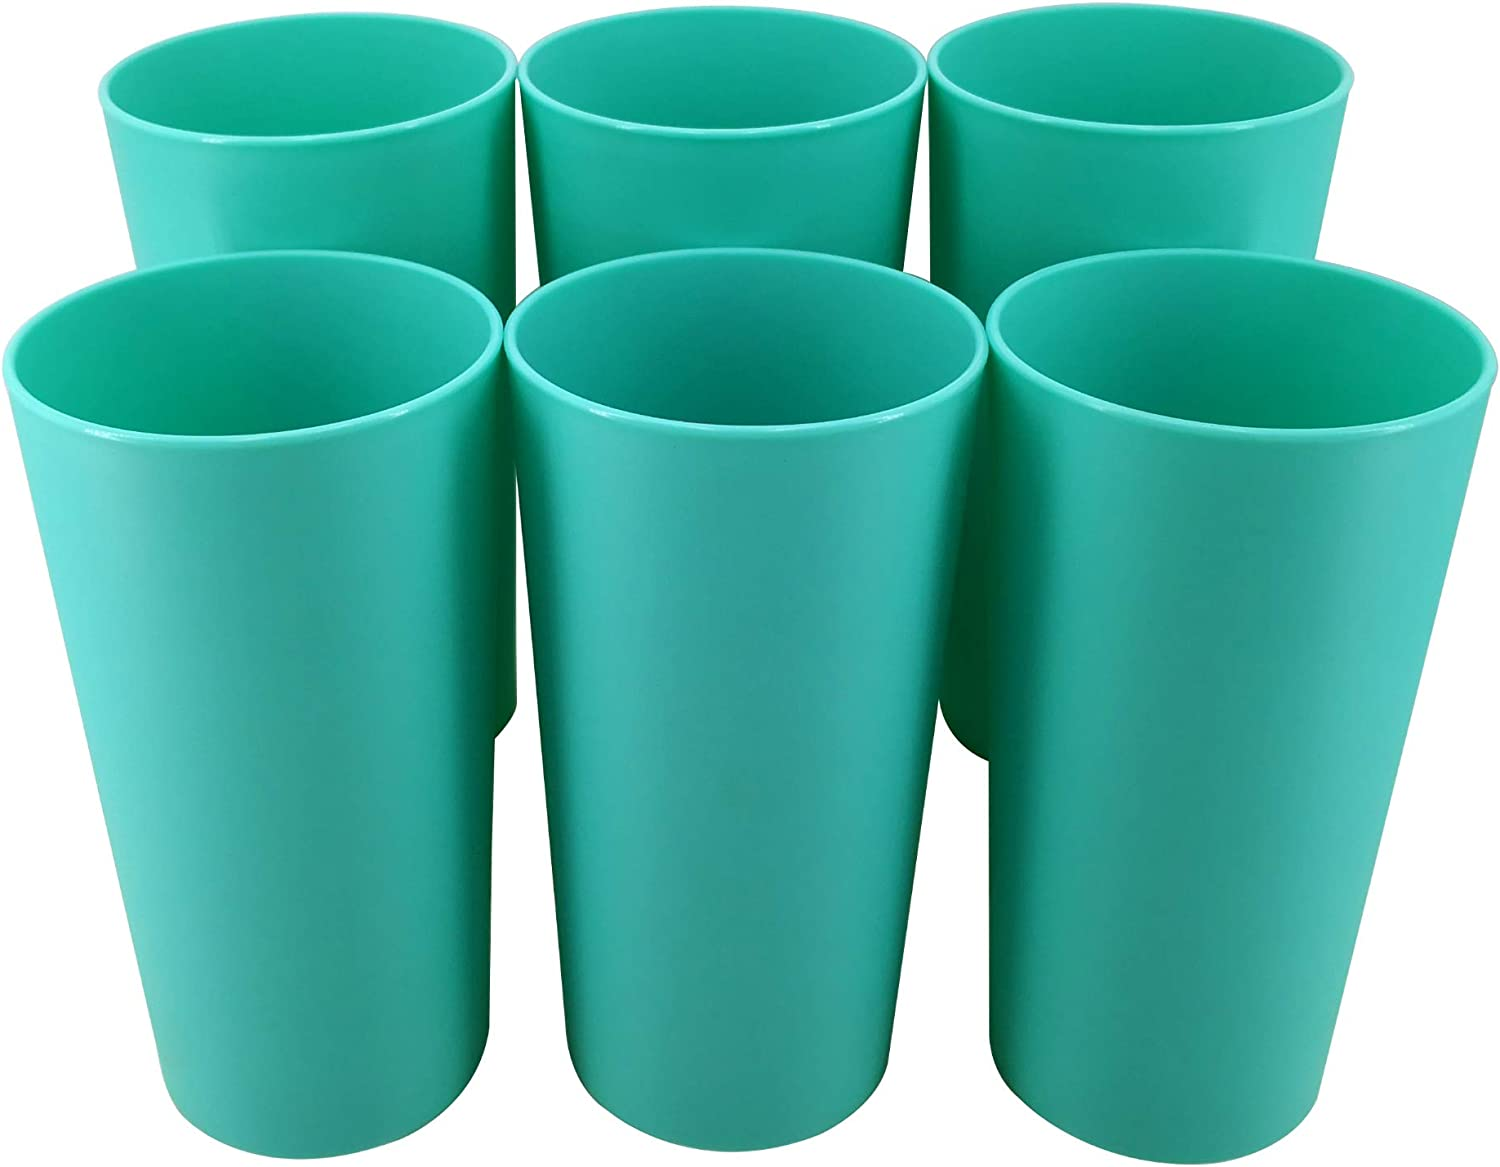 AOYITE 26-ounce Plastic Tumblers Kids Colorful Cups Durable Material for Kitchen Home Picnic Party Holiday BBQs Set of 6 (Teal)